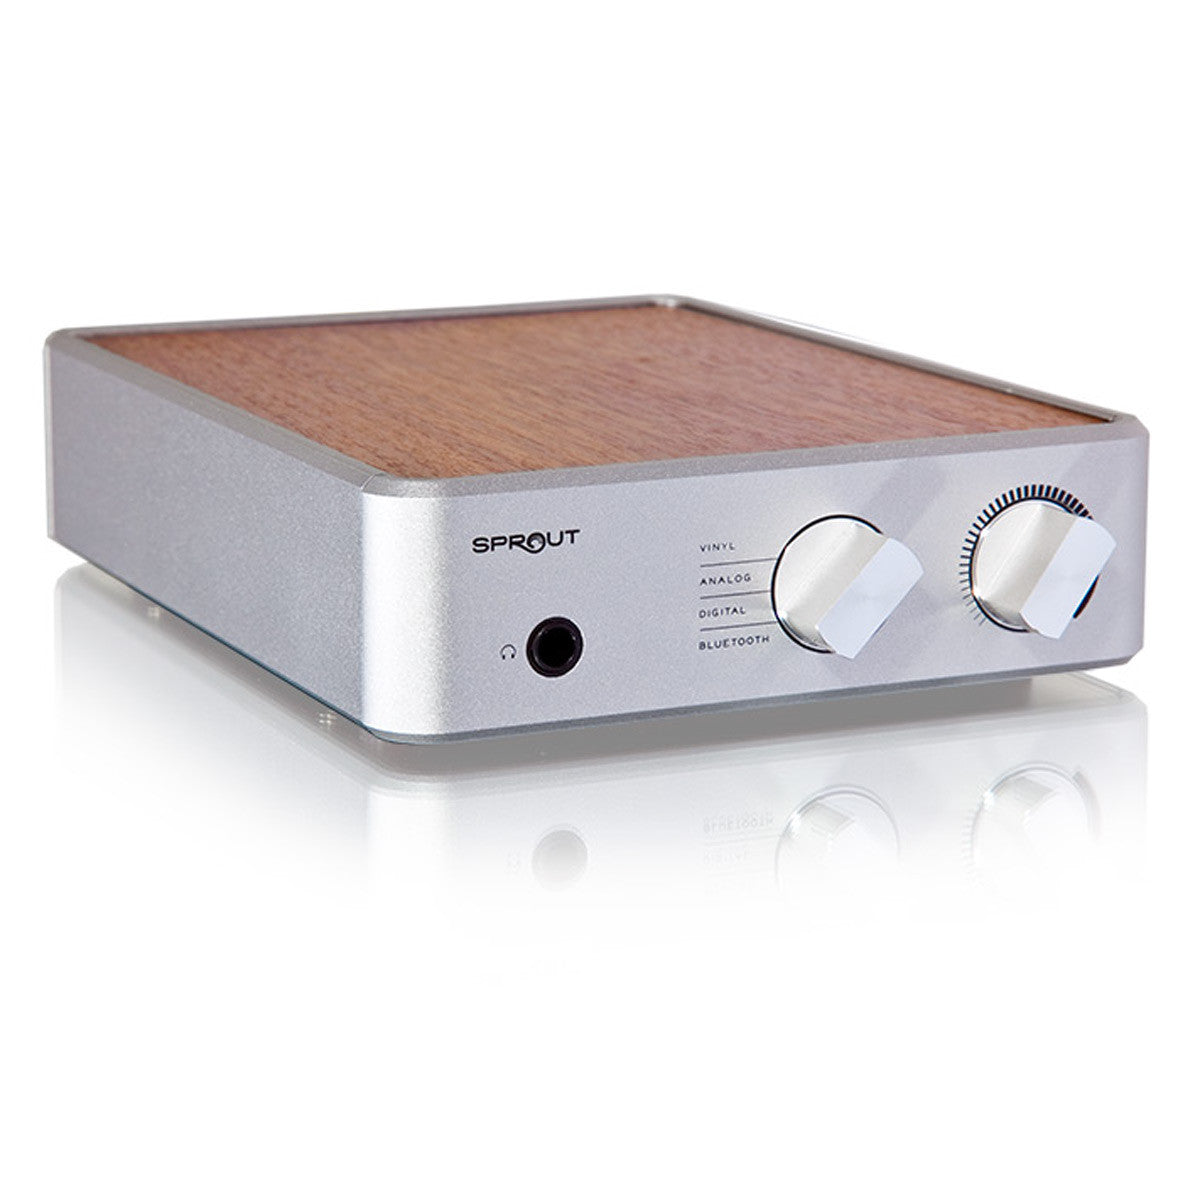 PS Audio: Sprout Integrated Amplifier - Amp, Phono Pre-Amp, DAC, Bluetooth detail